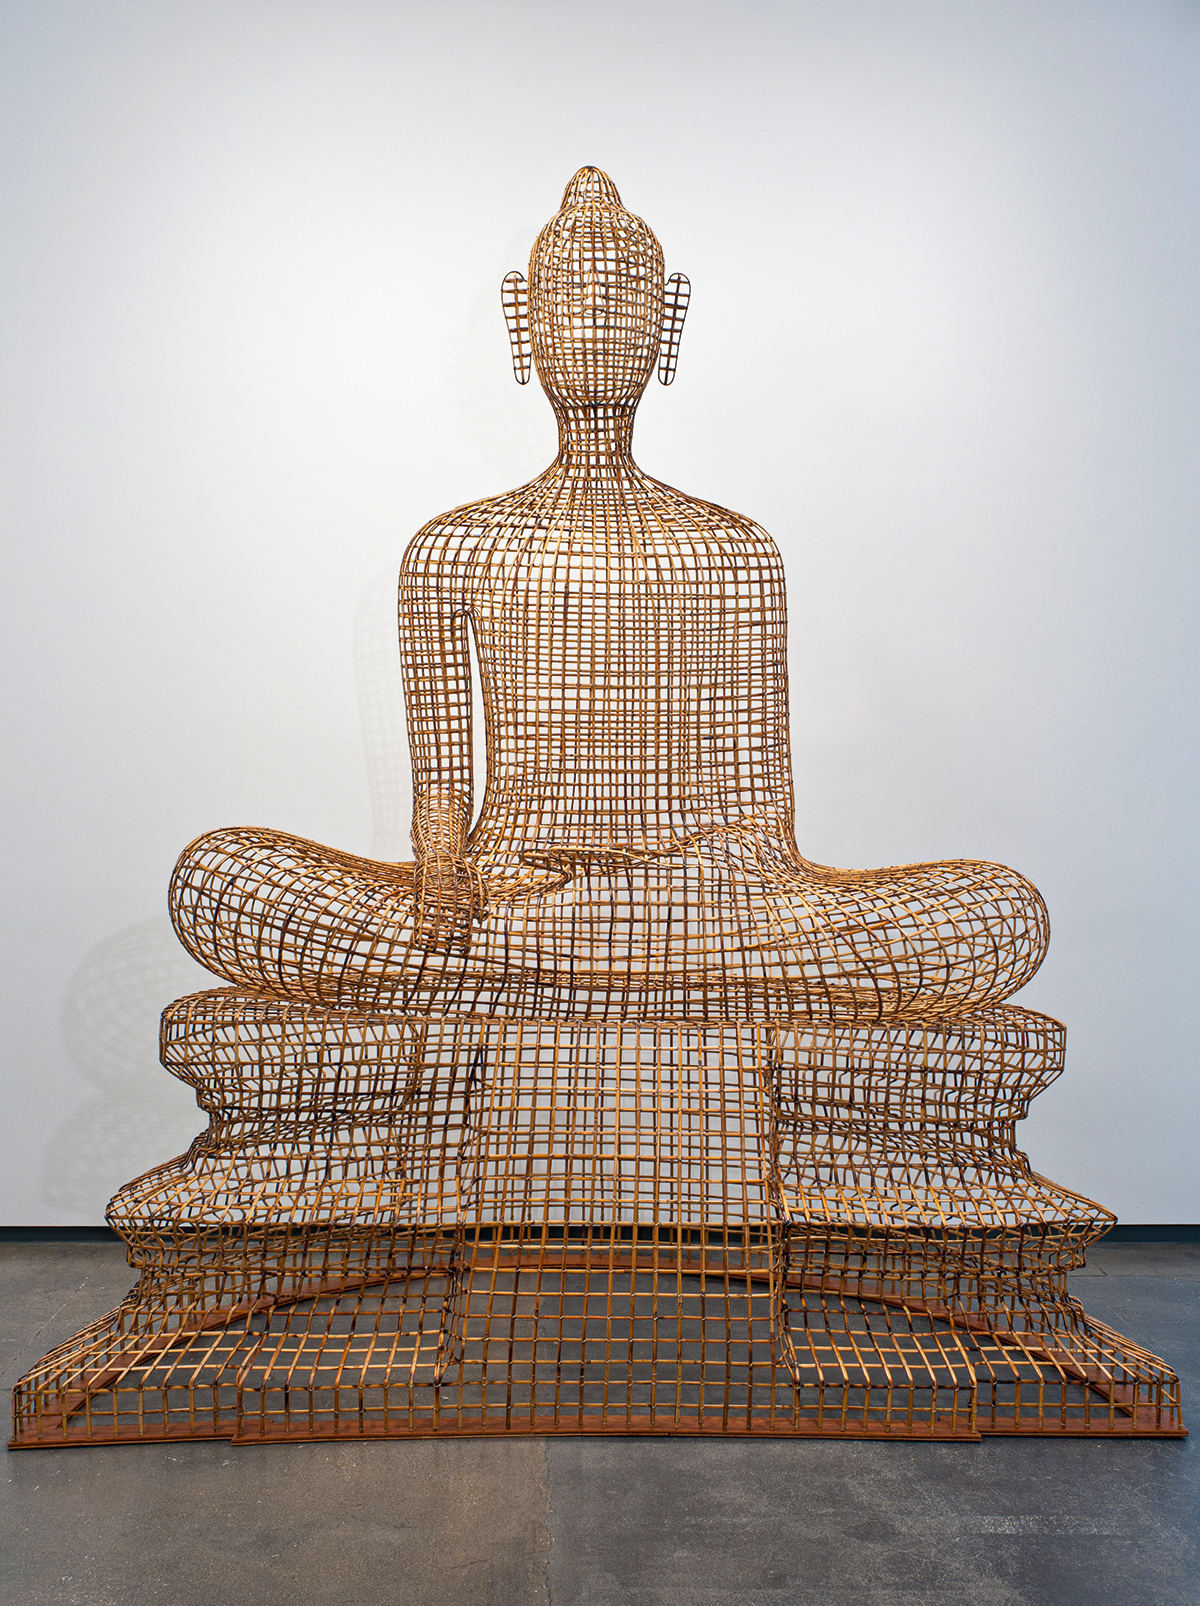 Buddha statue made out of wires.